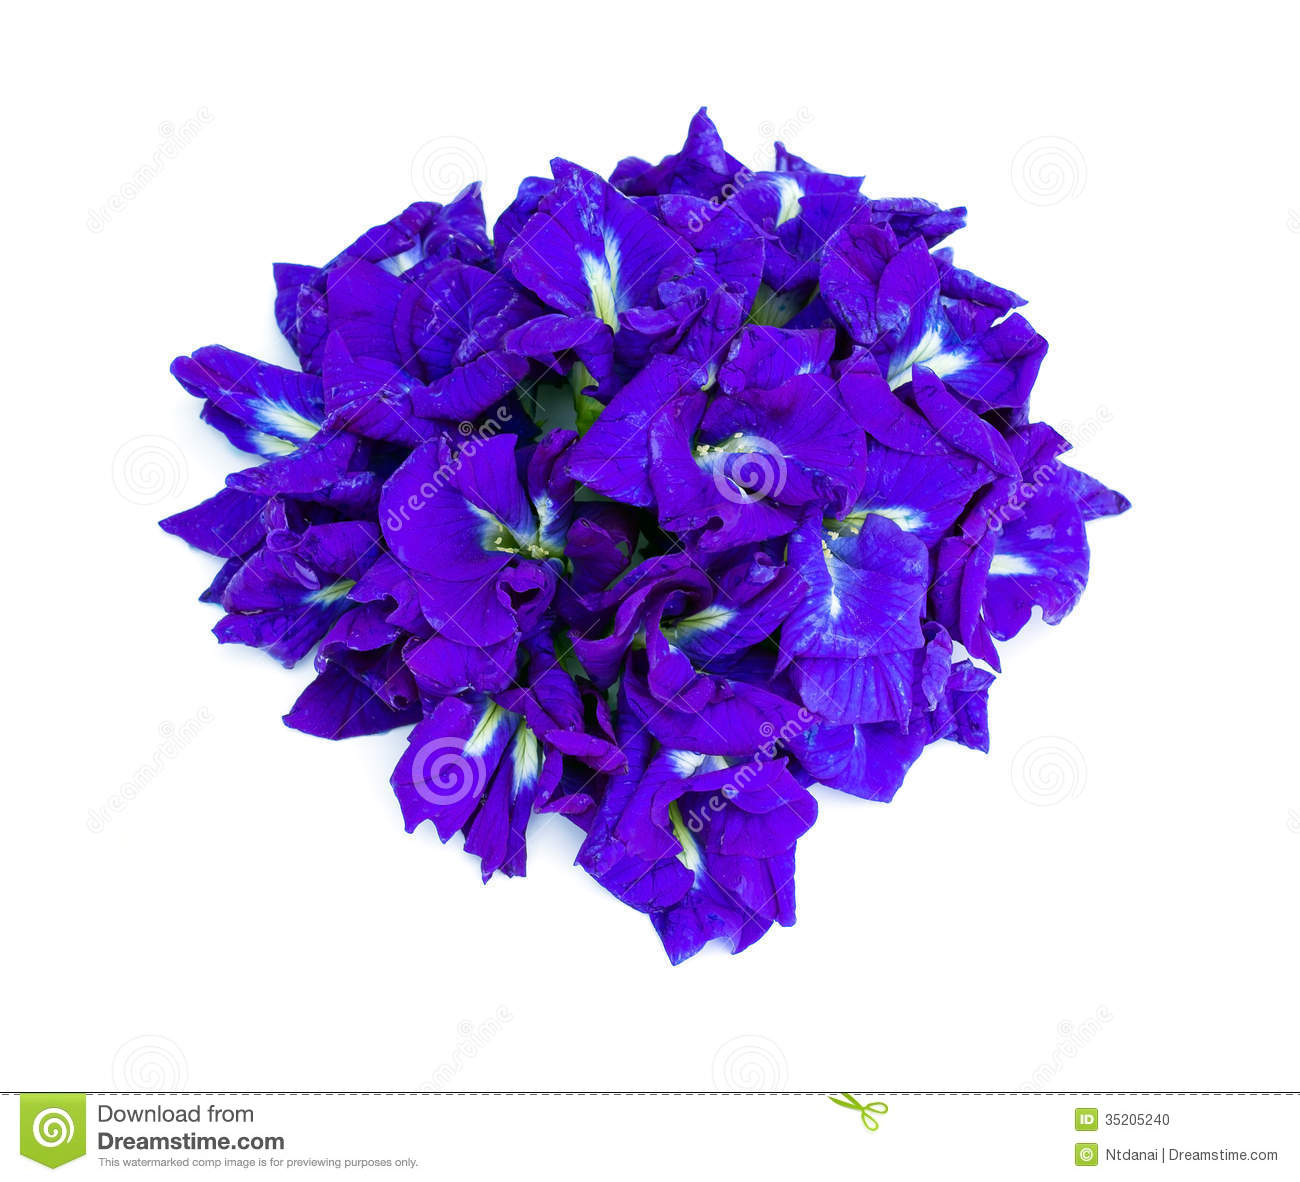 Blue Butterfly Pea Flower Stock Photo.